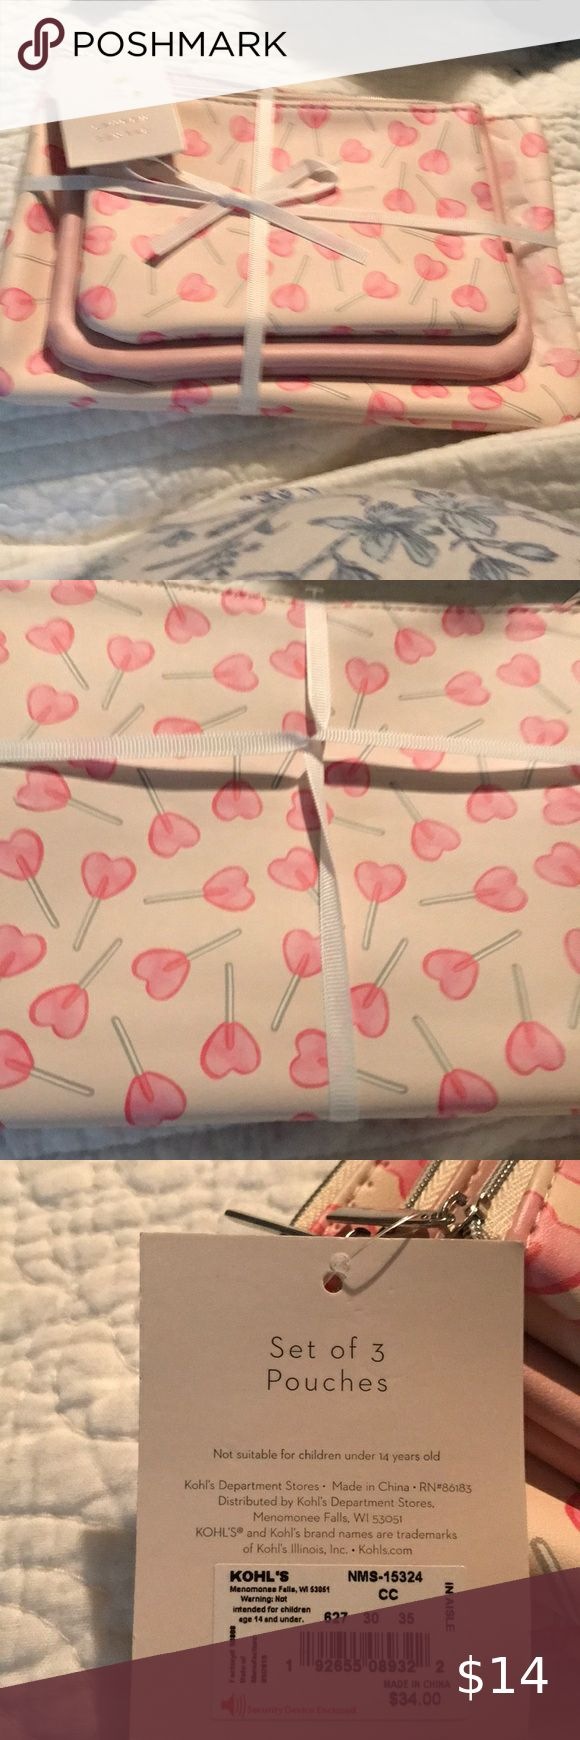 Lauren Conrad Cosmetic bags in 2020 Cosmetic bag, Lauren